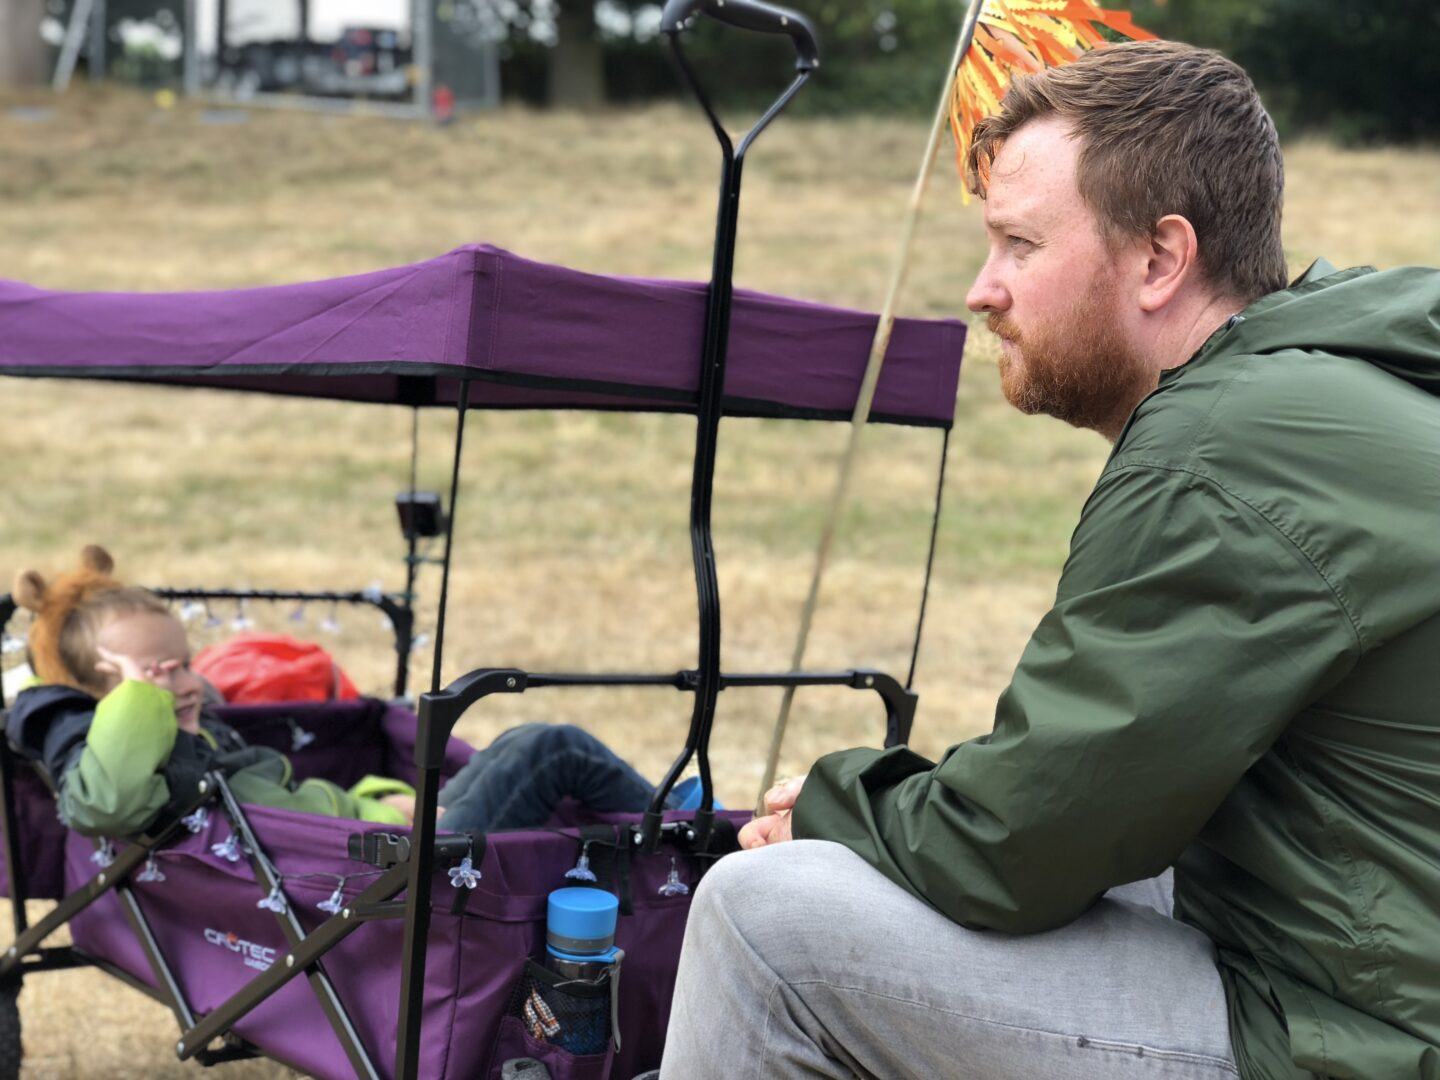 A boy lounges in a festival wagon for kids as his father stares off into the distance.